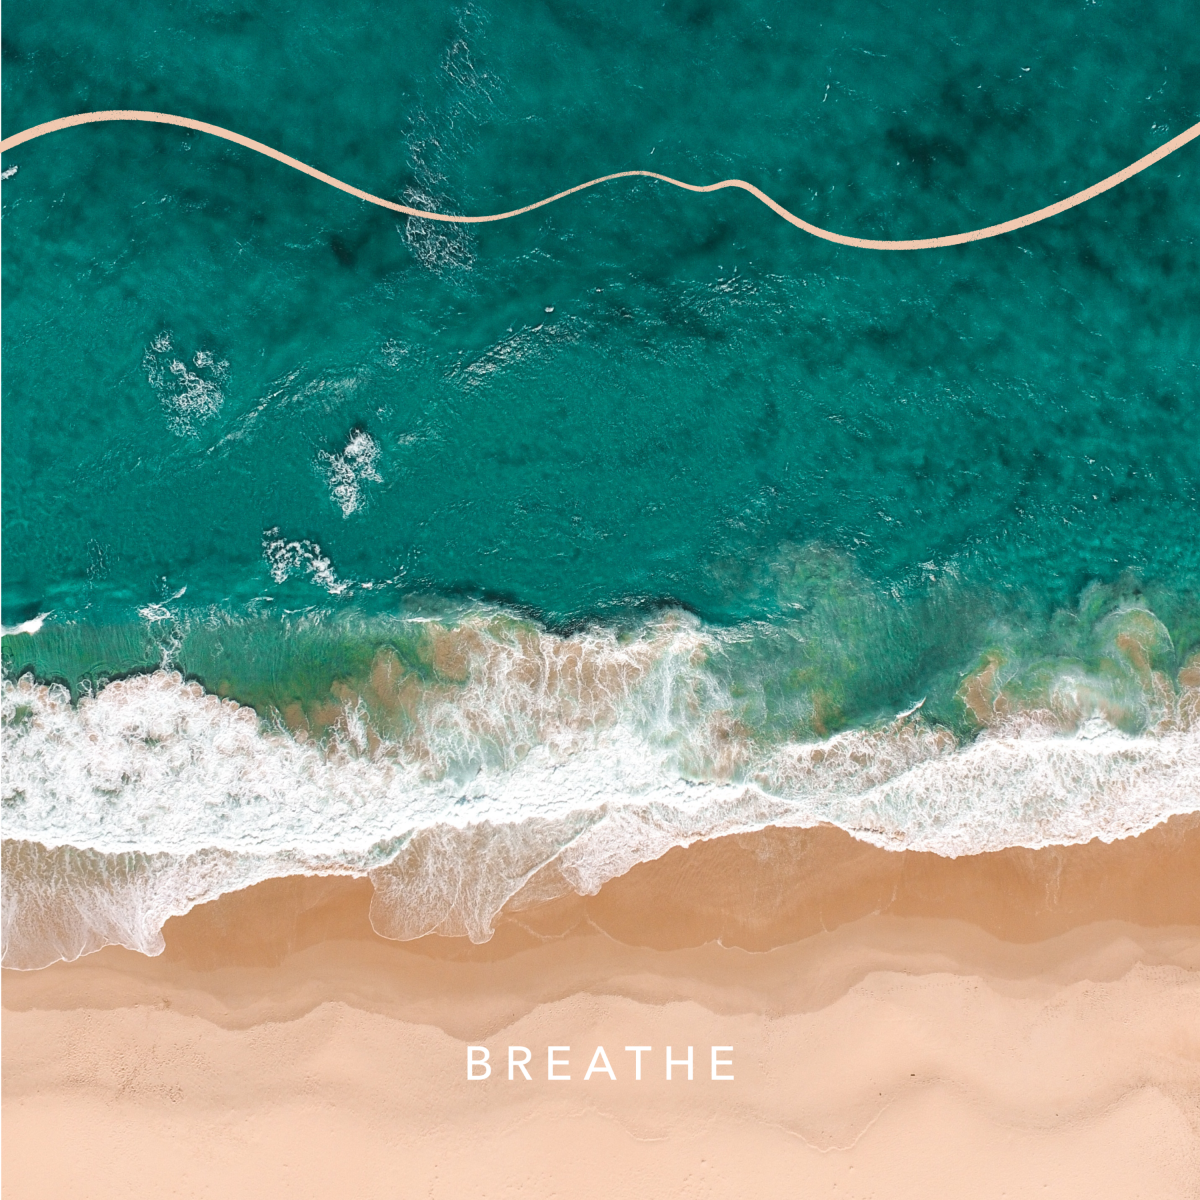 Inspired-Series-Breathe-Kiwani-Dolean